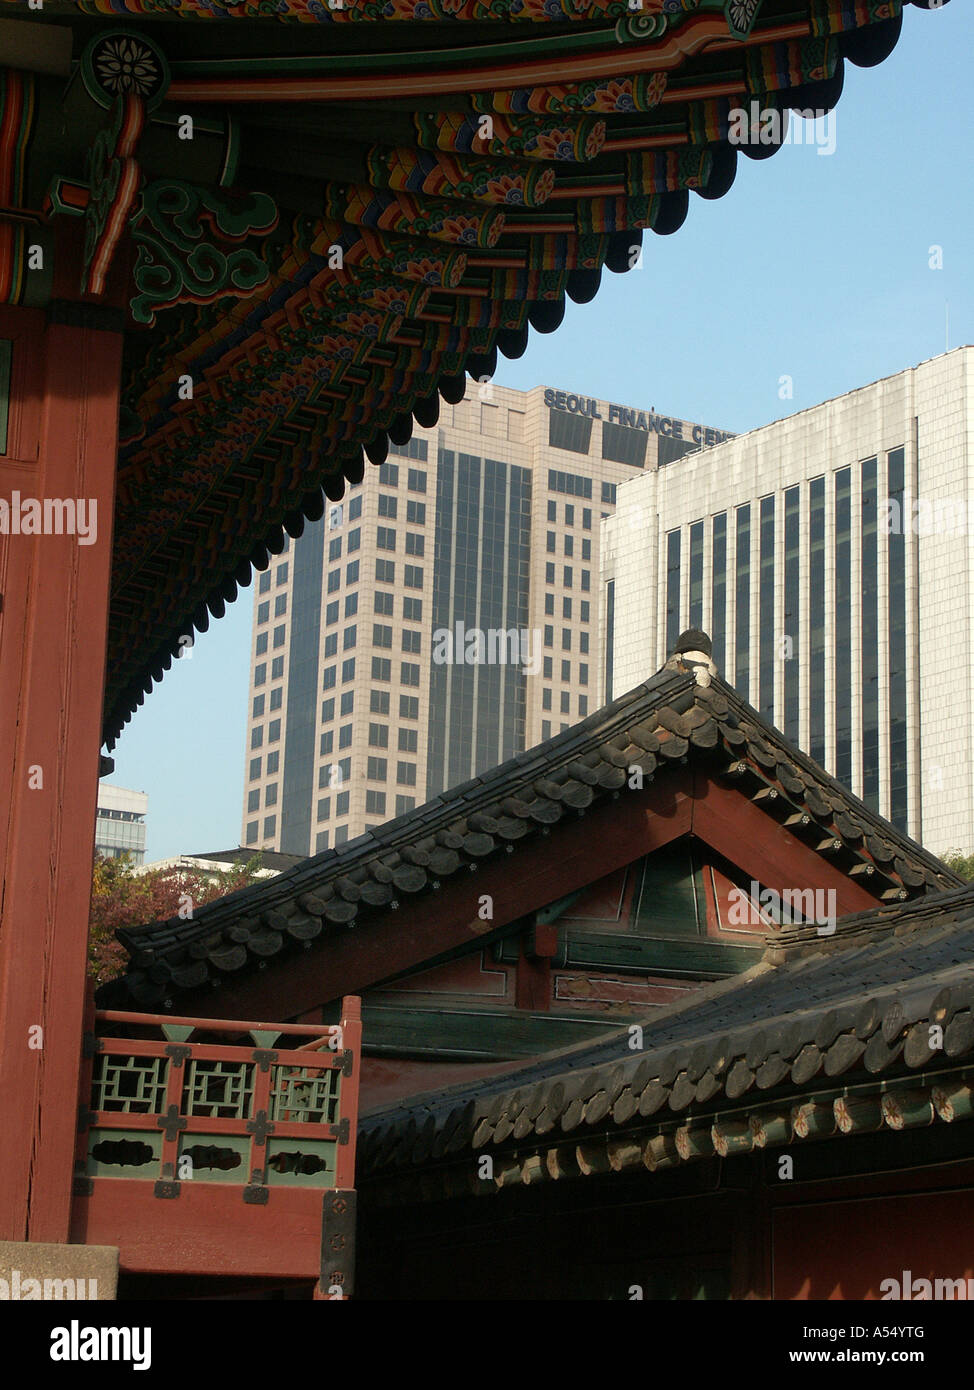 Painet ip2235 korea old new royal palace seoul 2003 country developing nation less economically developed culture - Stock Image